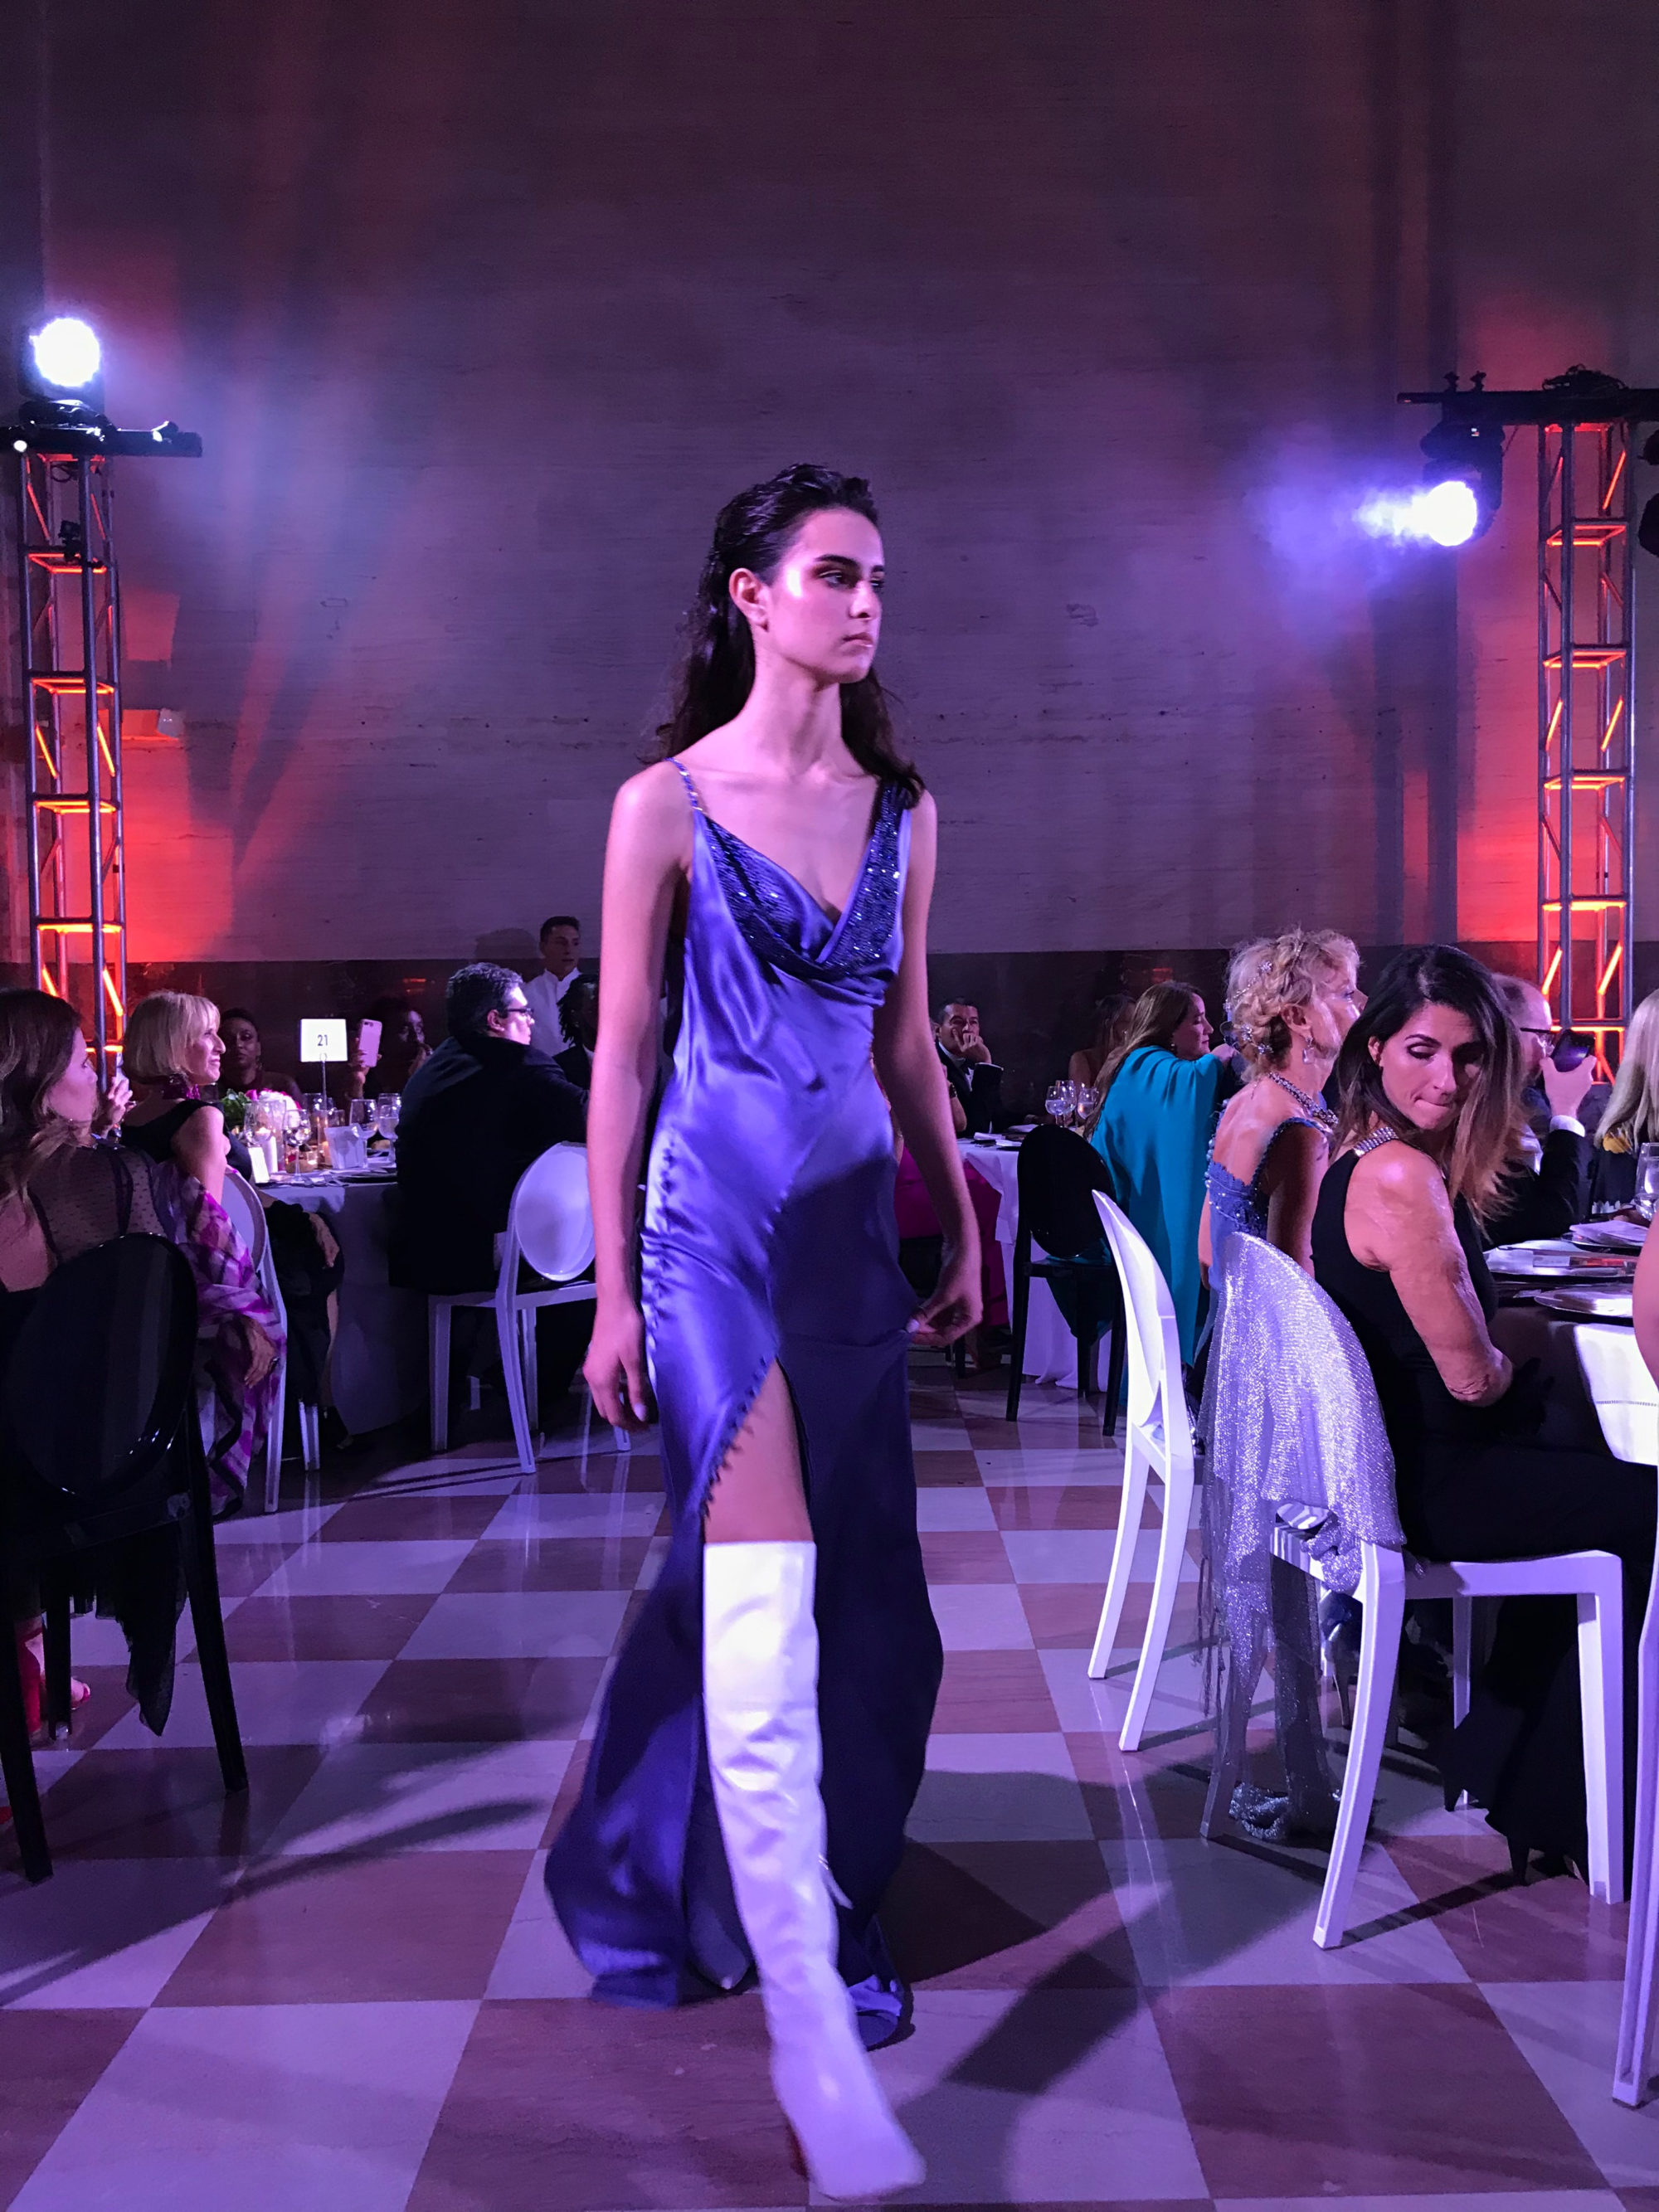 Miami Fashion Week Benefit Gala 2018: Inside Look